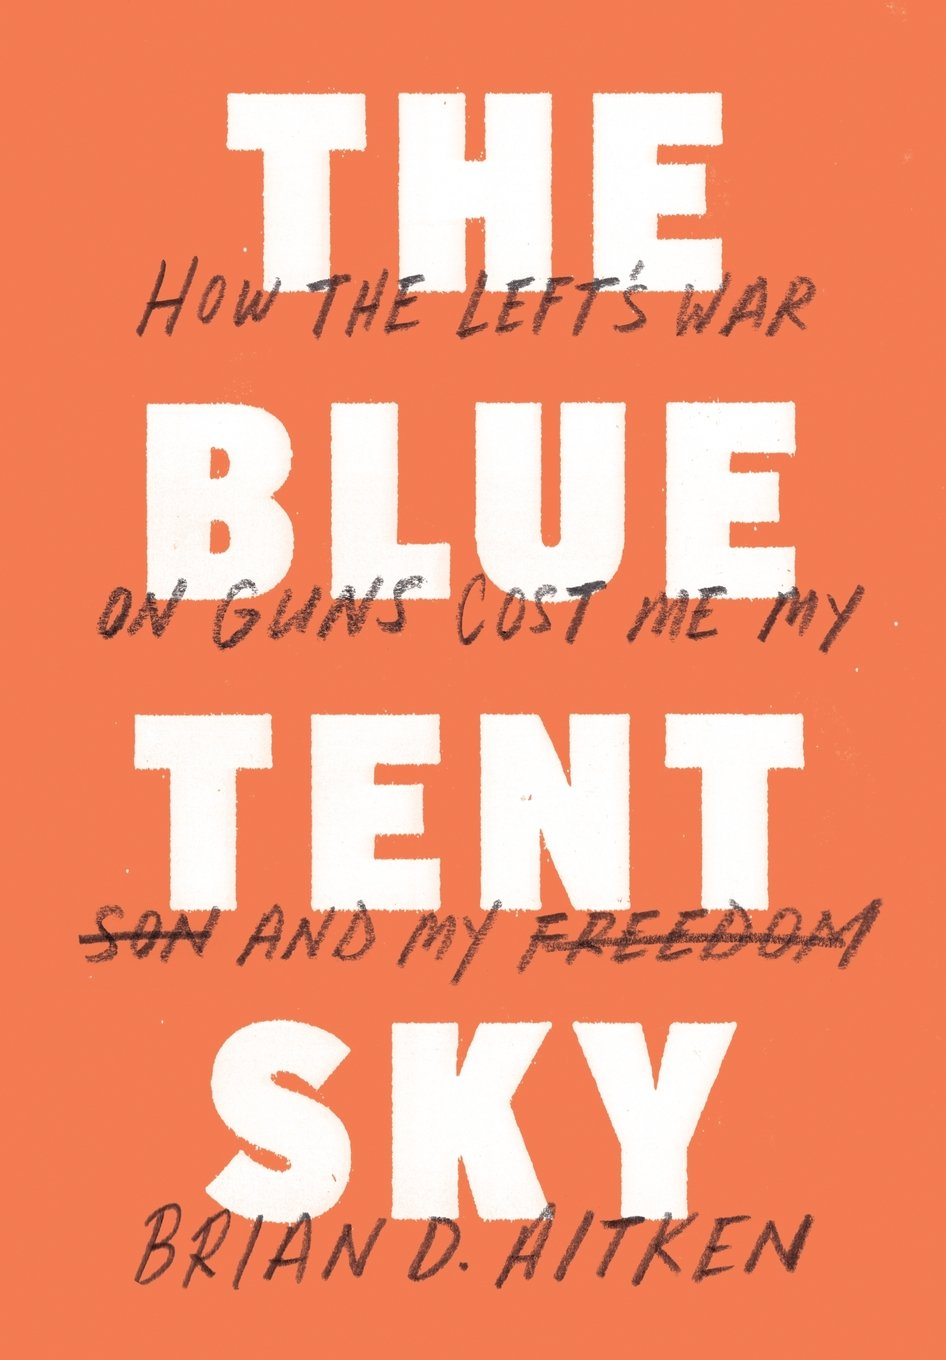 Blue Tent Sky Lefts Freedom